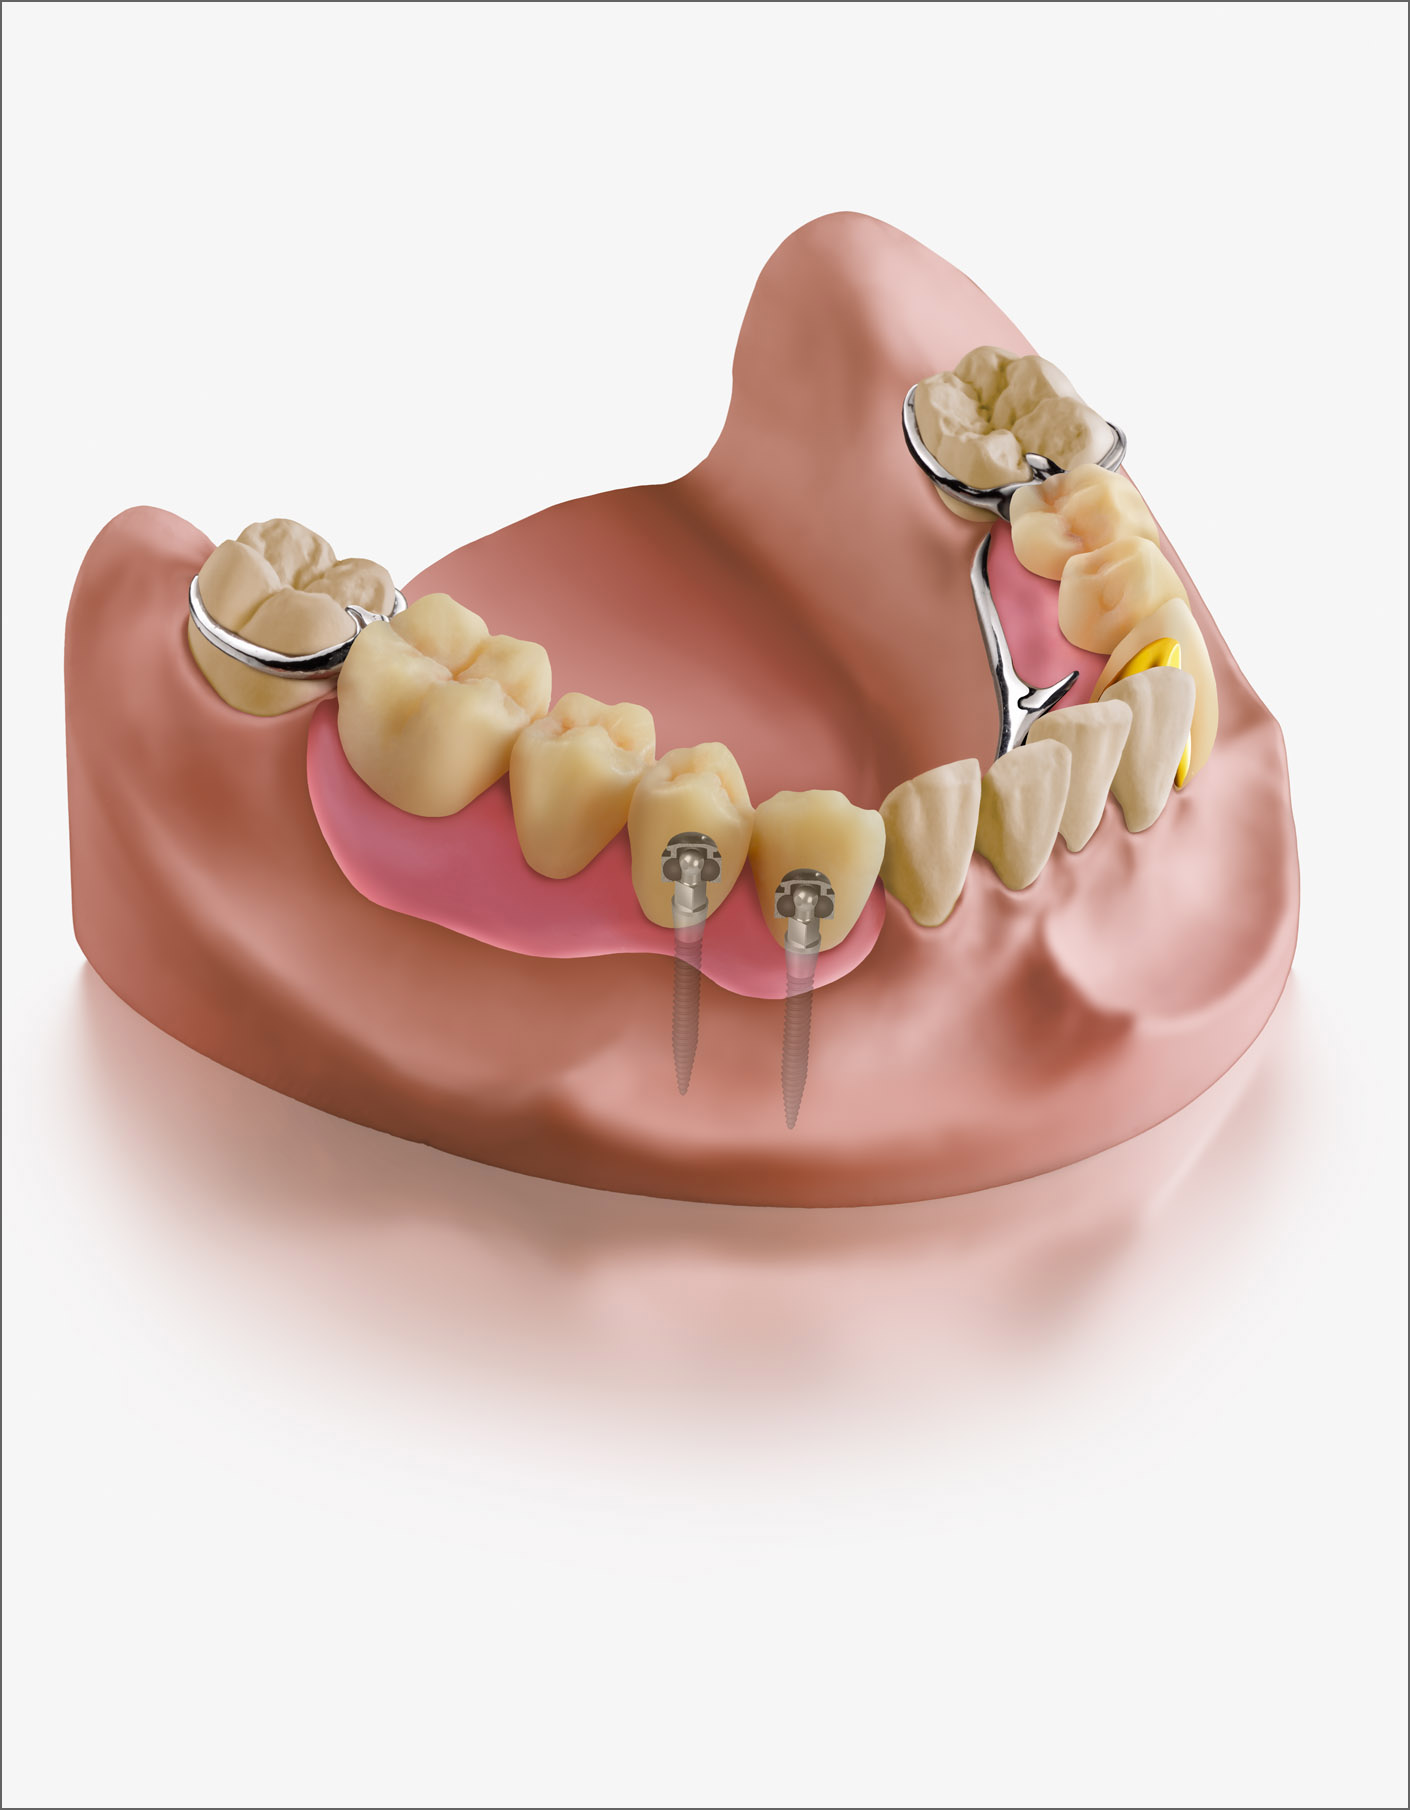 portfolio_dental_illustration_1410x1810